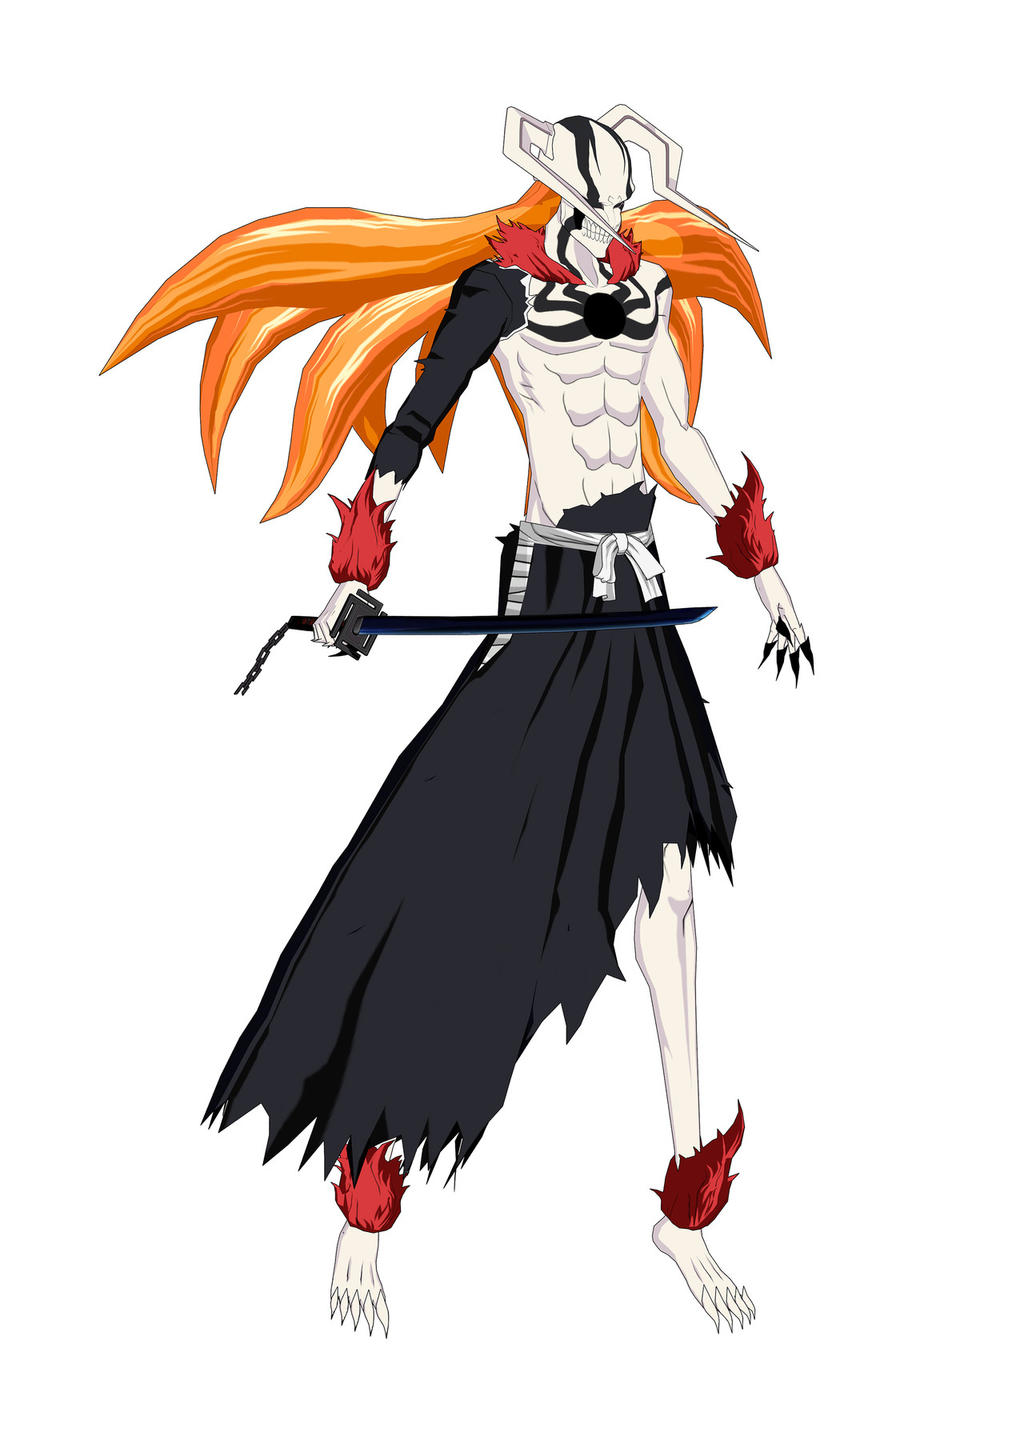 Bleach Soul Resurrection by theoneaboveall77 on DeviantArt